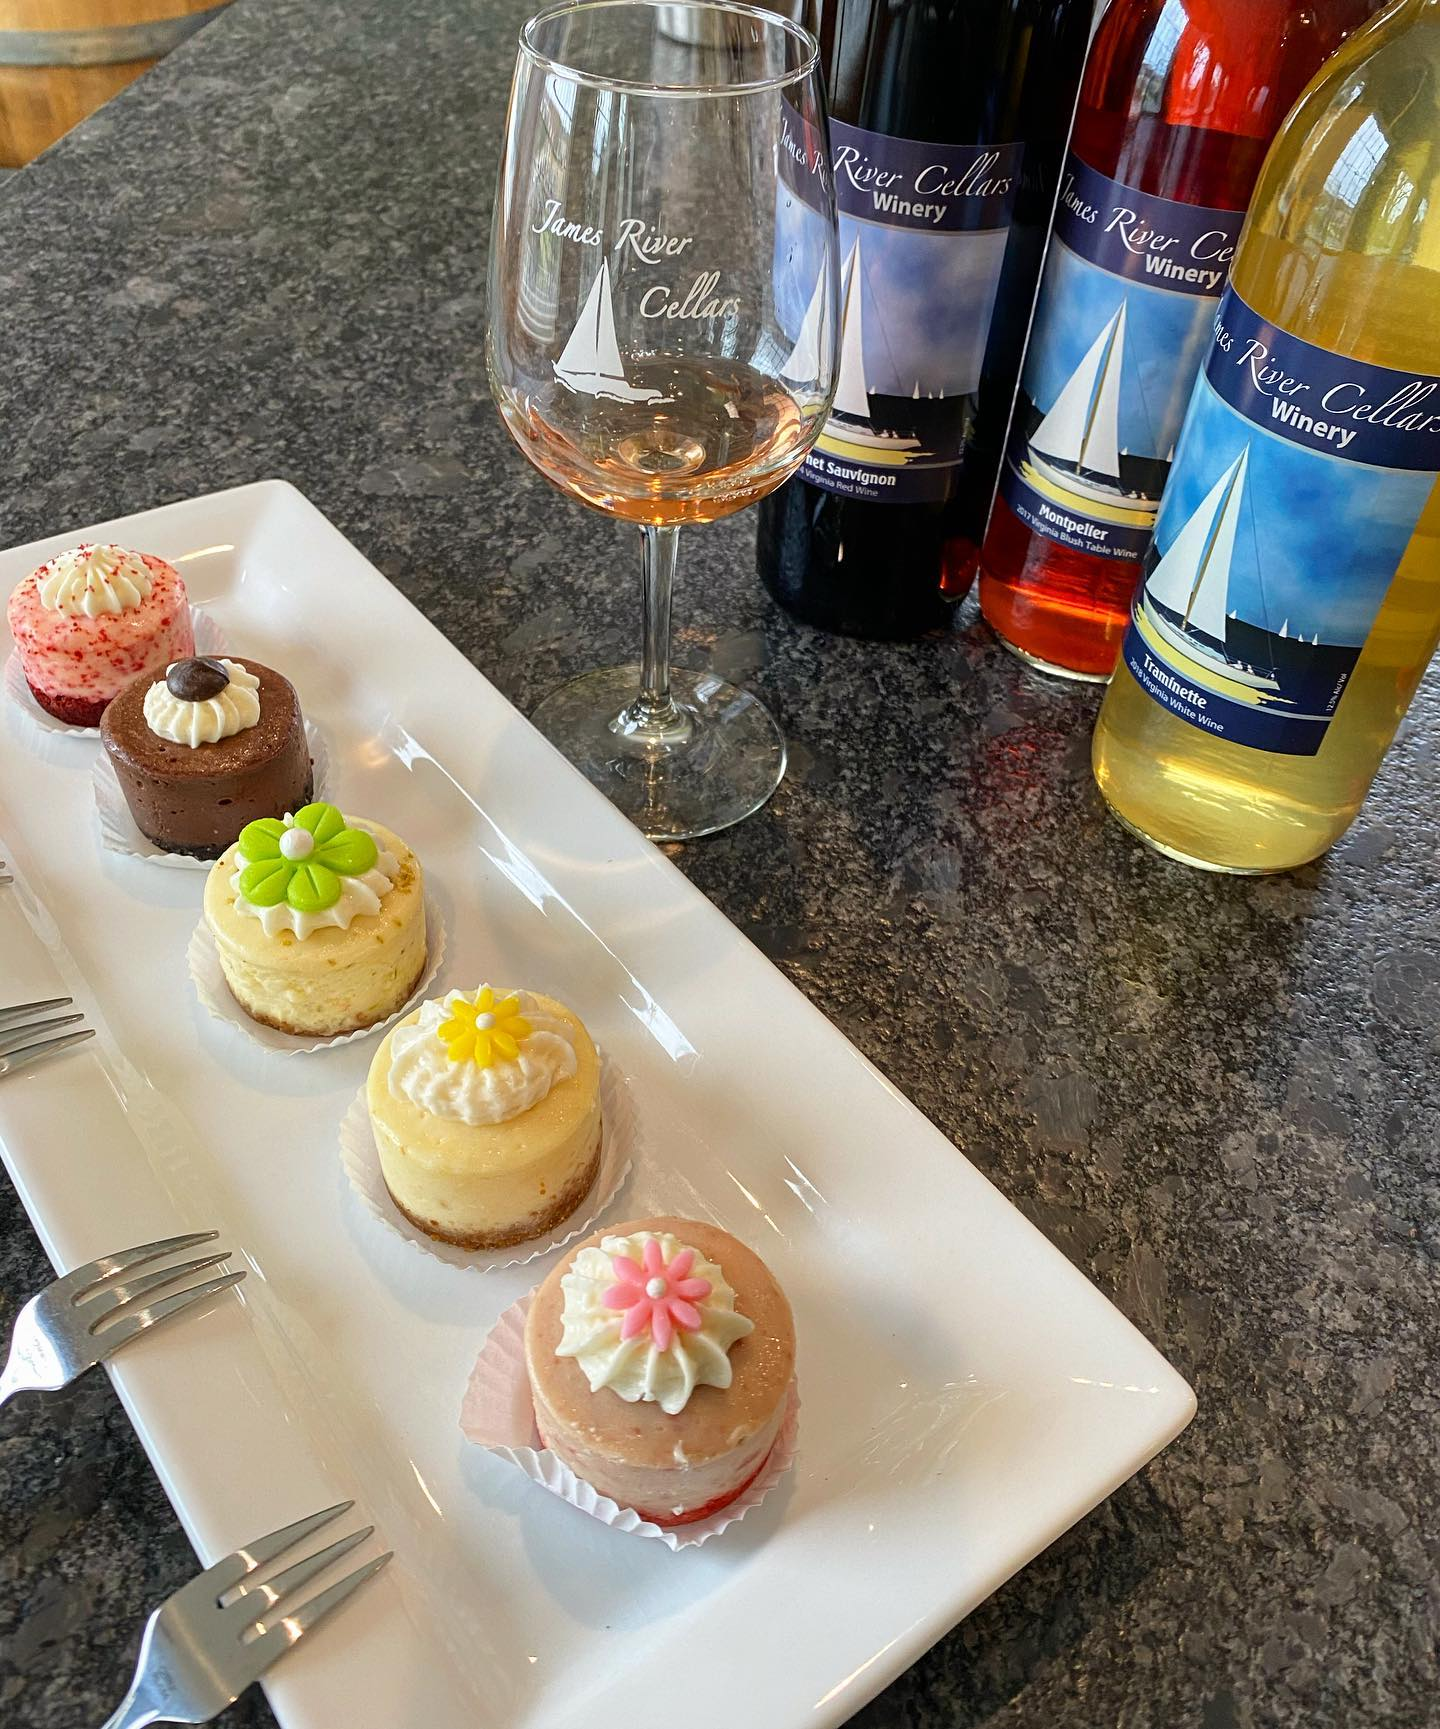 Wine and Geescakes 2020